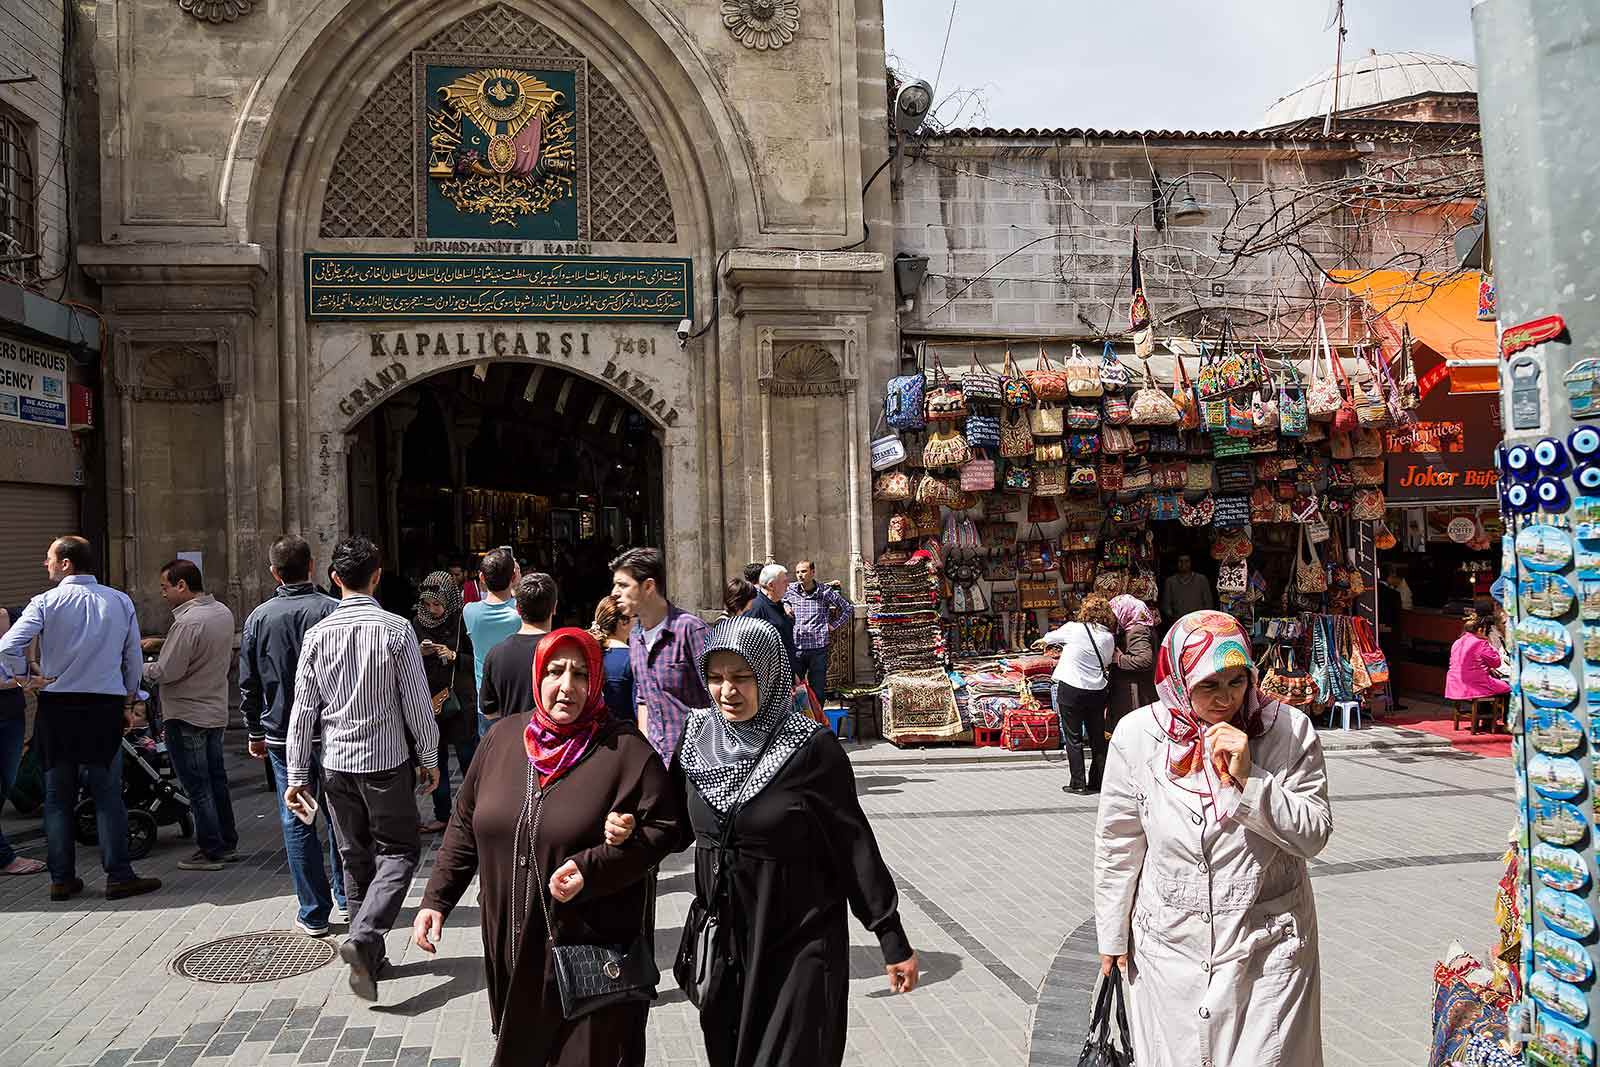 entrance-grand-bazaar-istanbul-turkey